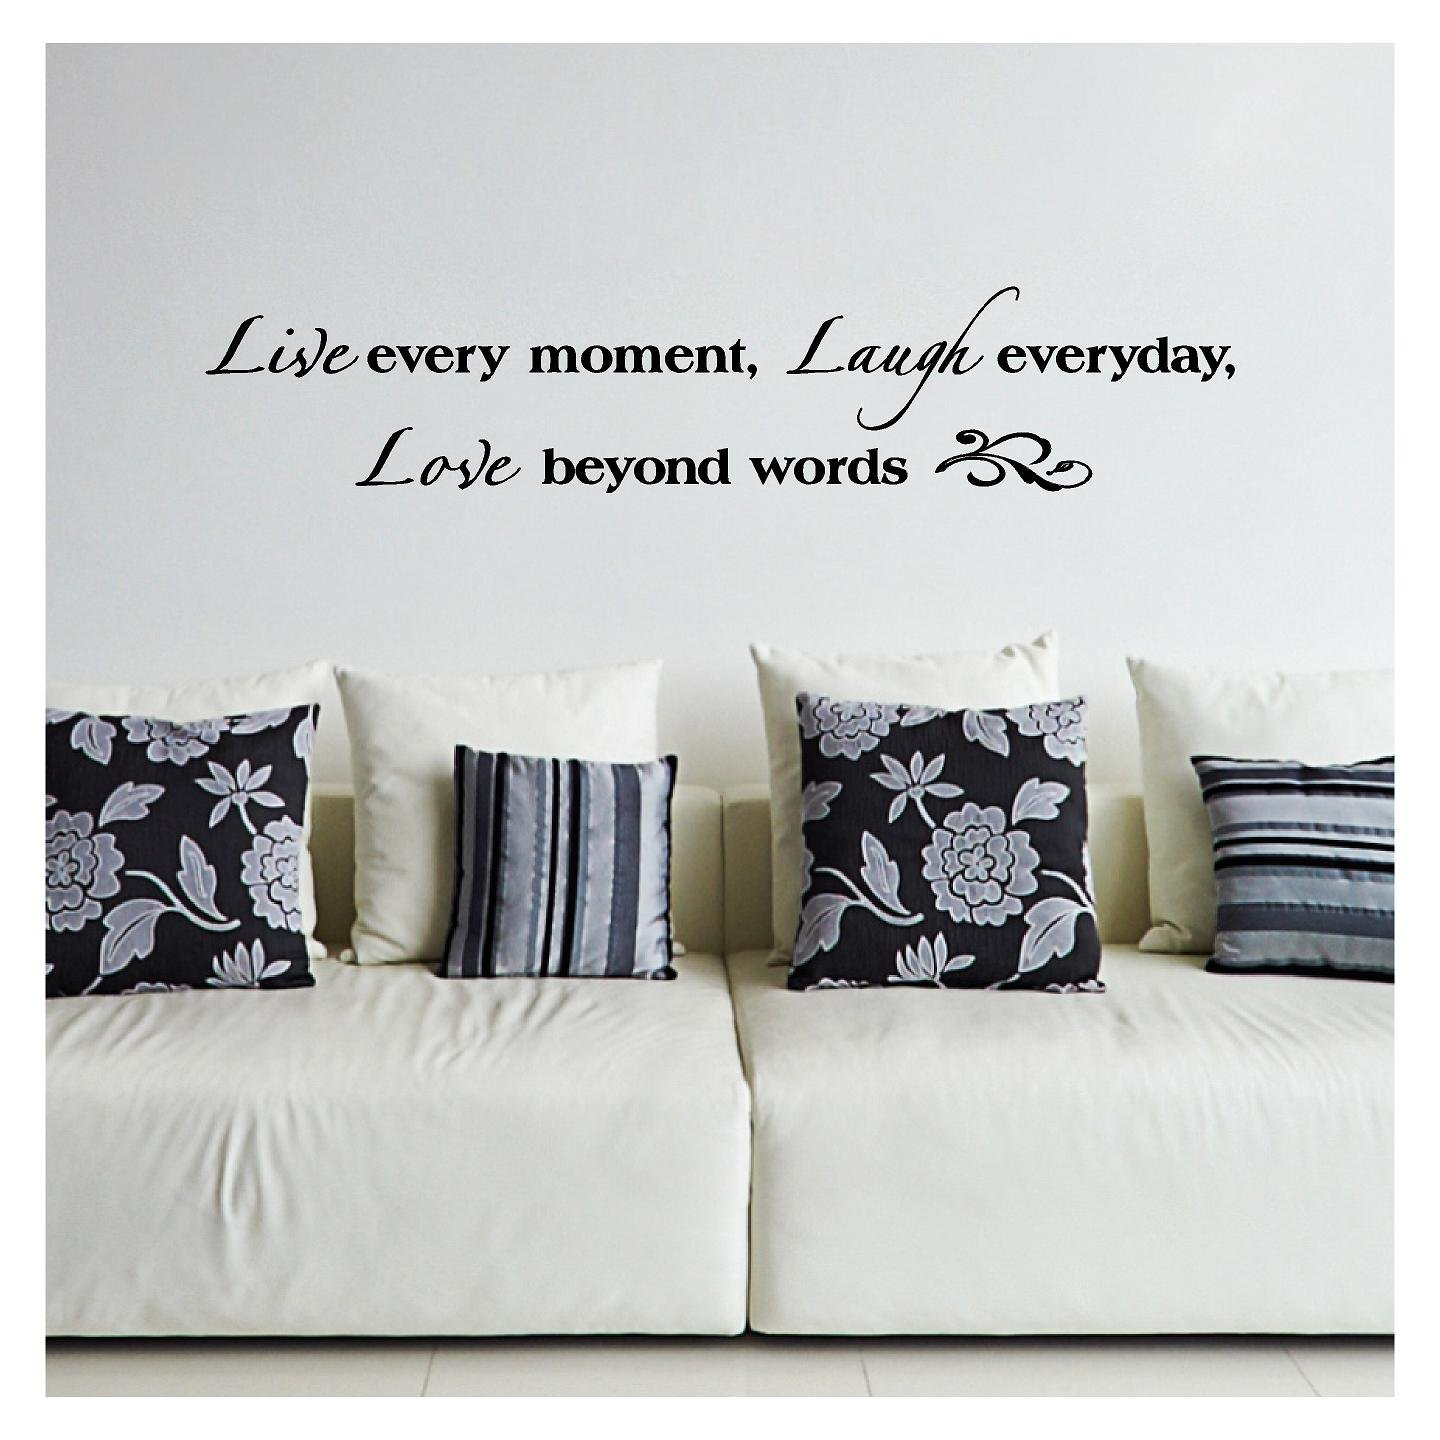 Live Every Moment, Laugh Everyday, Love Beyond Words Vinyl Lettering Wall Decal Sticker (8''H x 40''L, Black) by Wall Sayings Vinyl Lettering (Image #1)